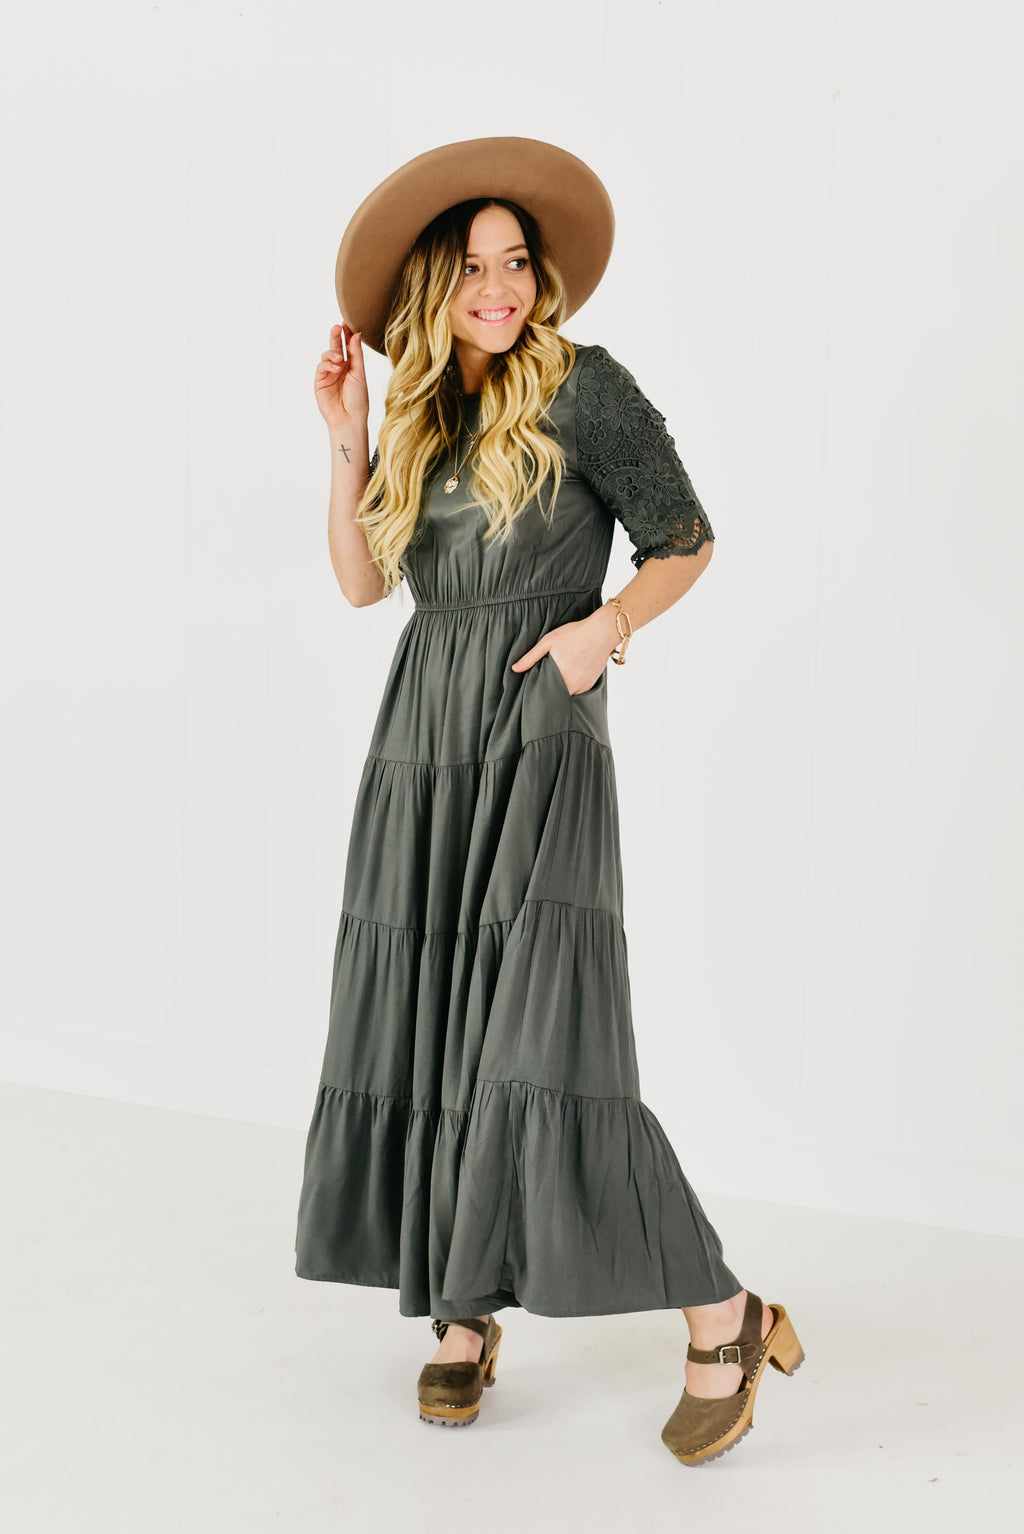 The Tessa Tiered Dress - Jade